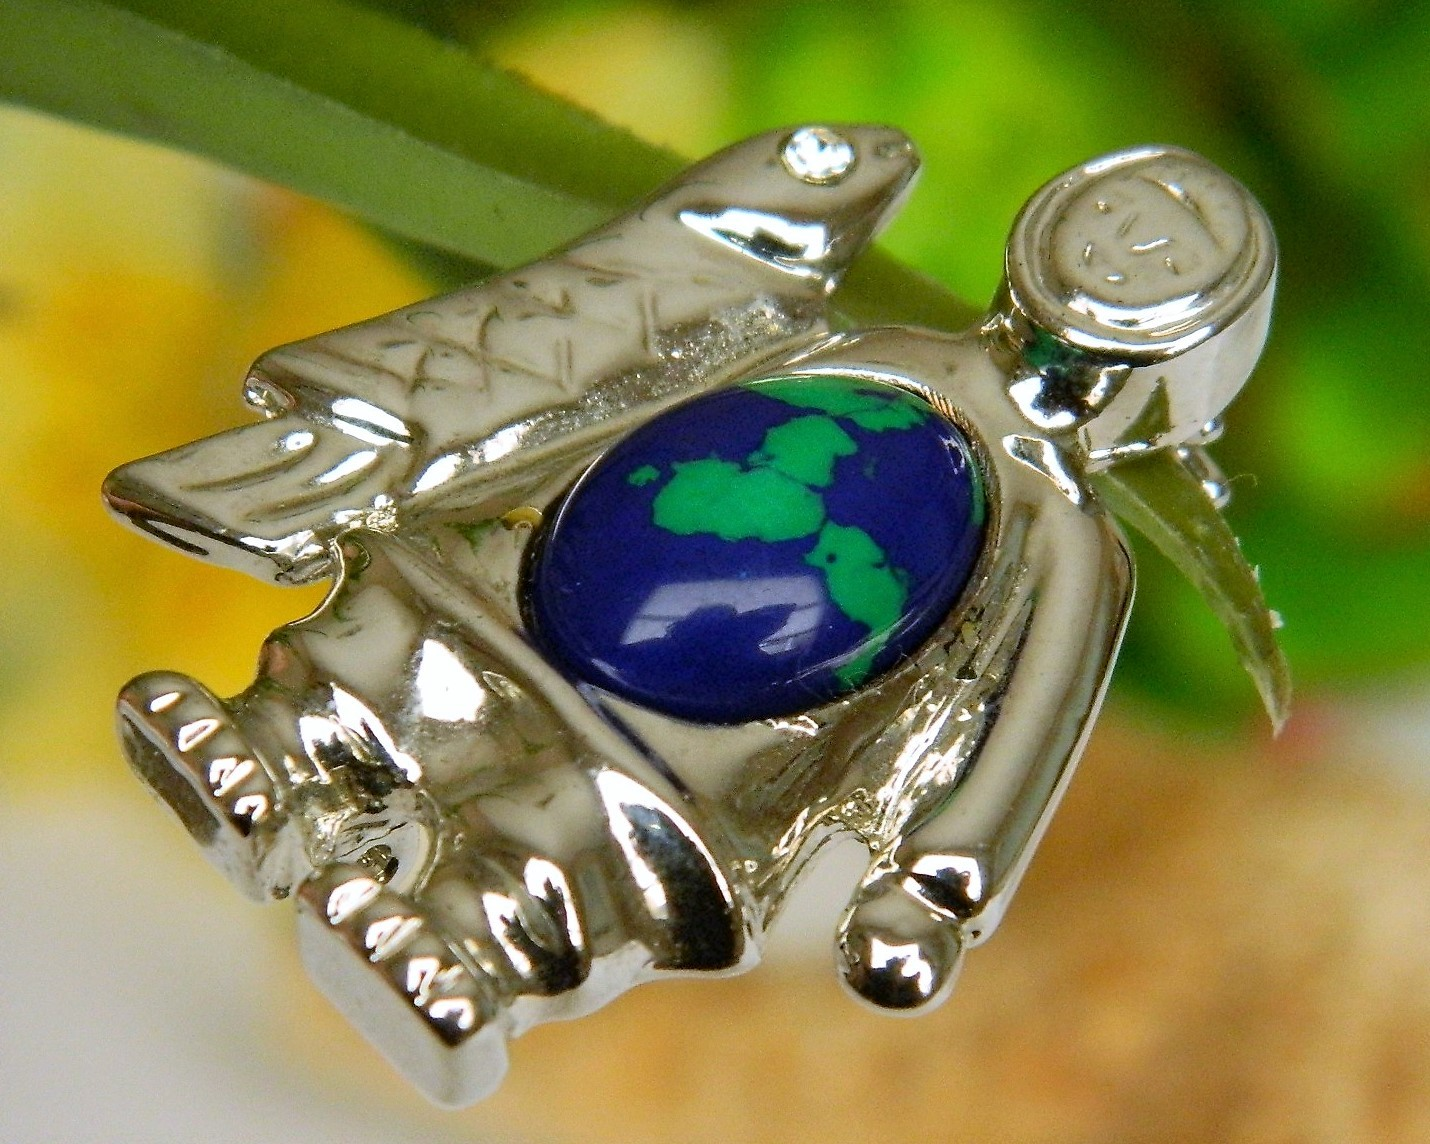 Vintage Eskimo Inuit Fish Jelly Belly Brooch Pin Silver Tone Cabochon image 10